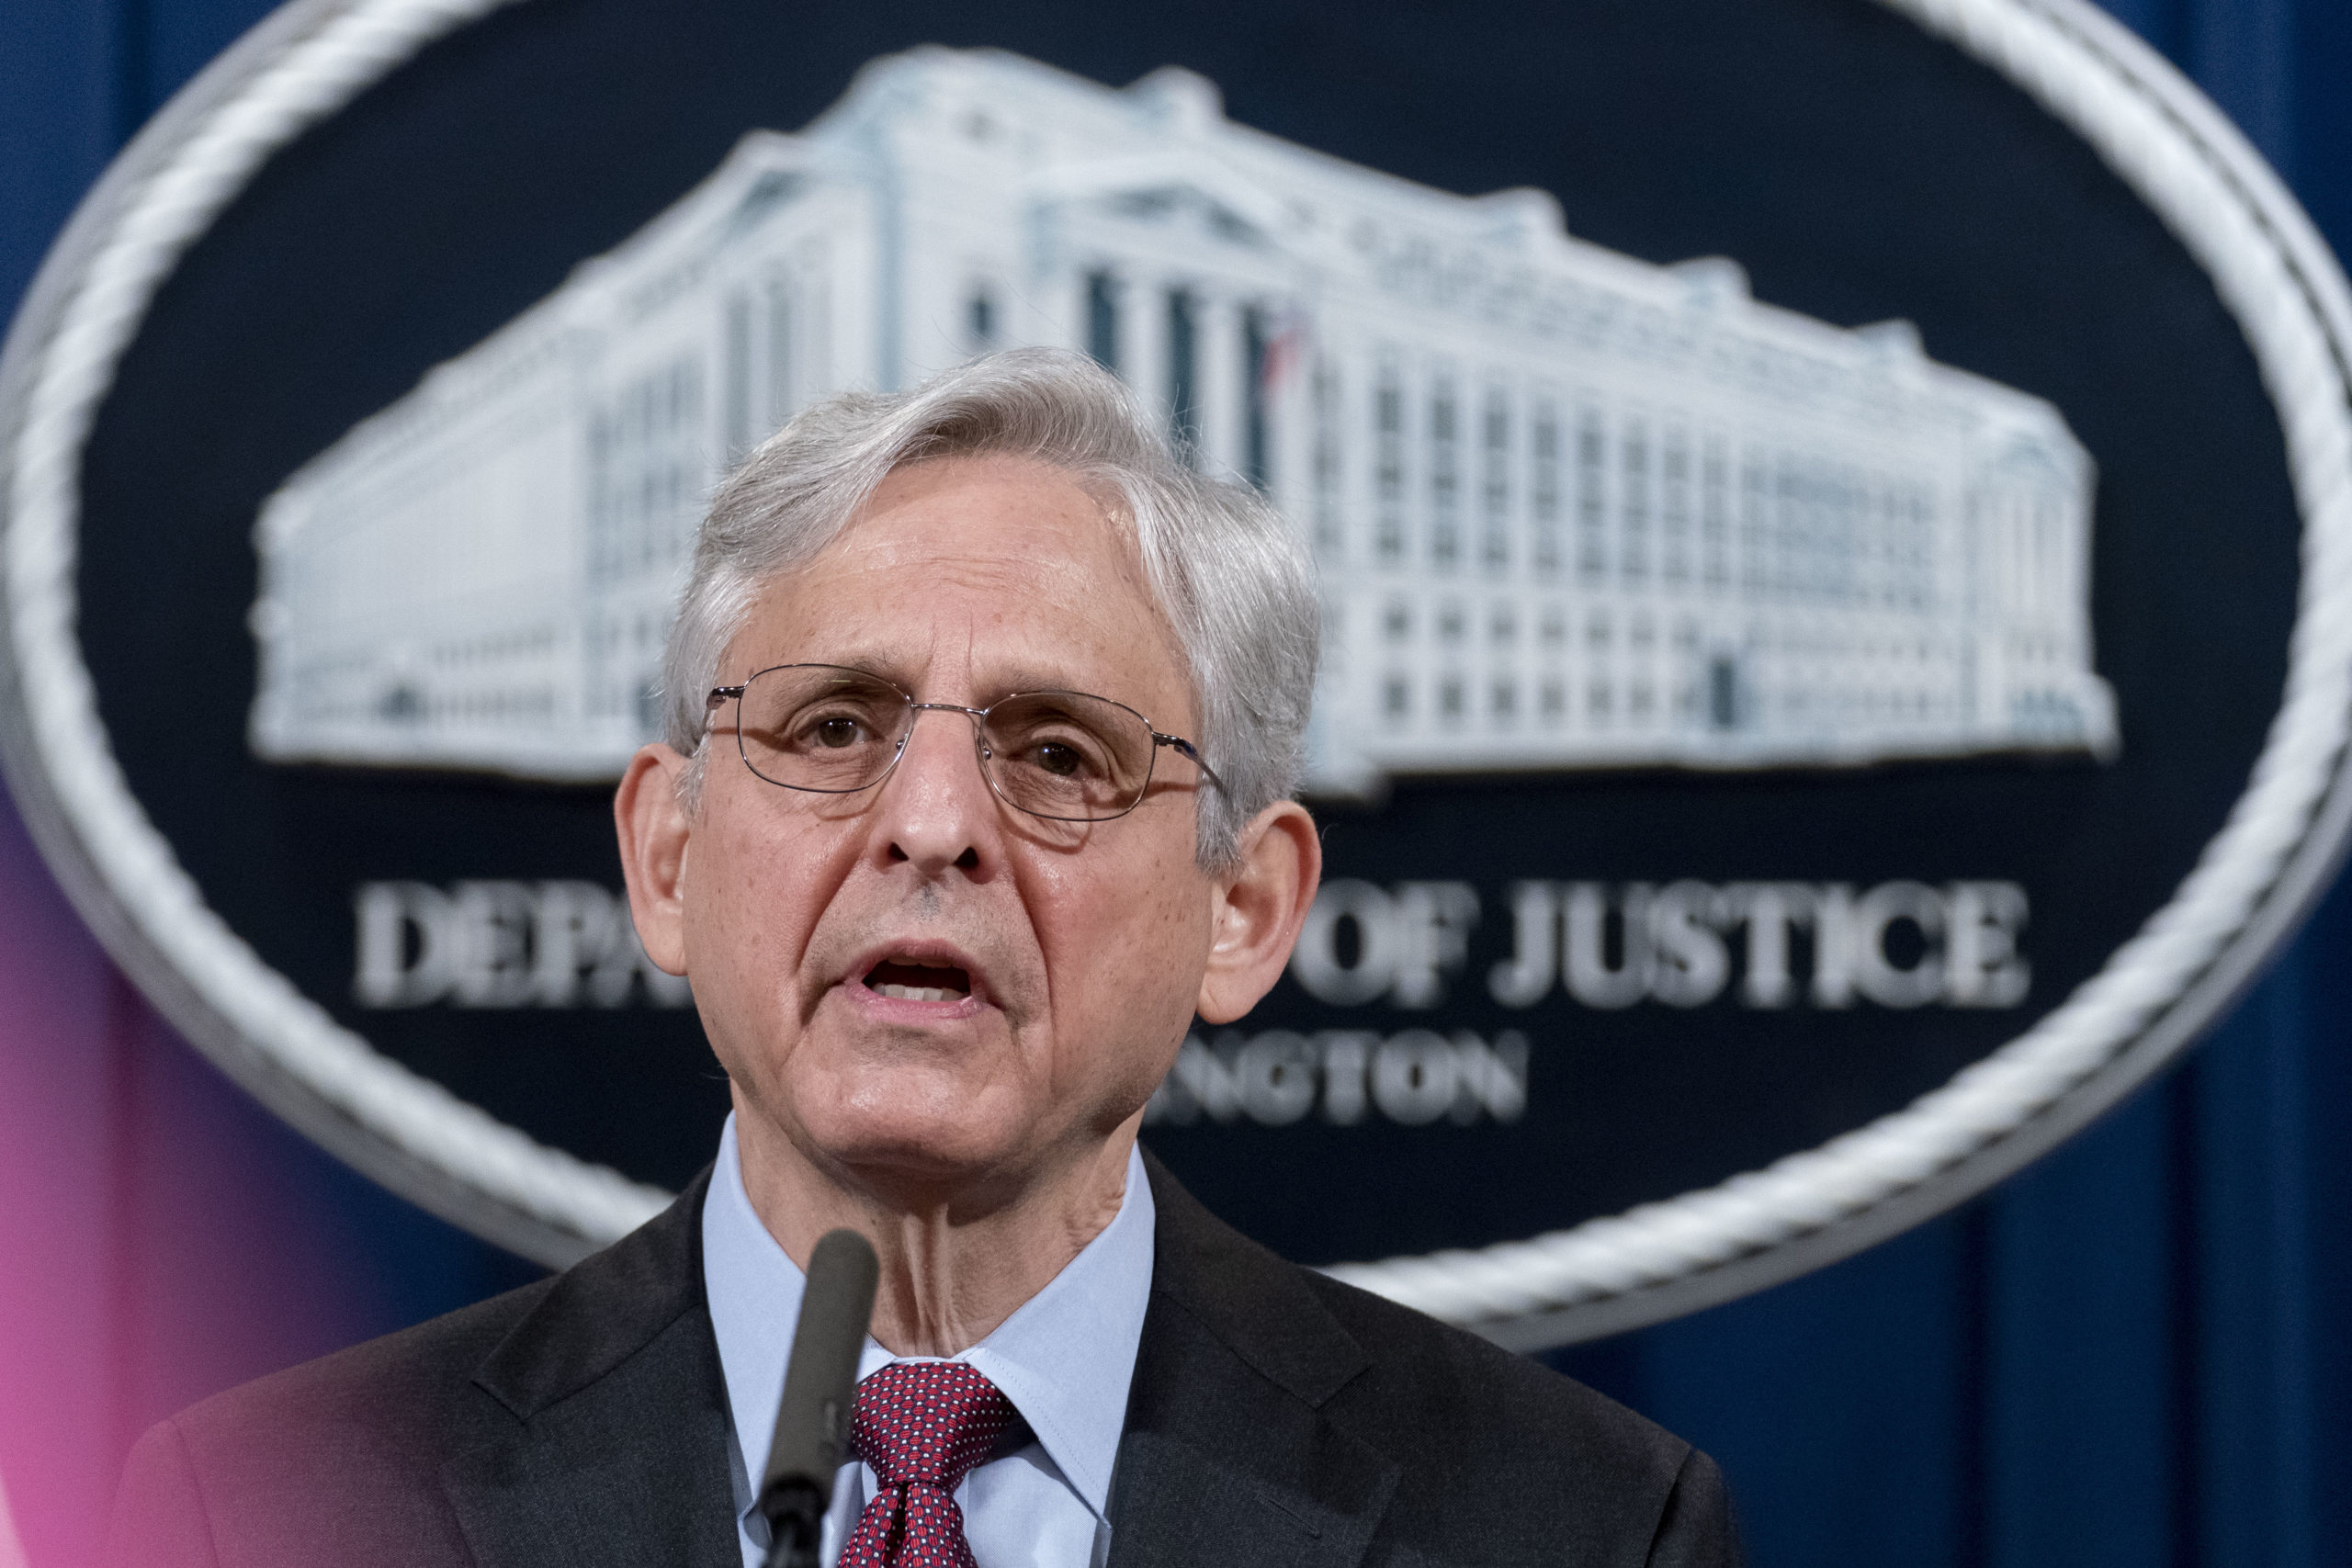 Attorney General Merrick Garland speaks about a jury's verdict in the case against former Minneapolis Police Officer Derek Chauvin in the death of George Floyd, at the Department of Justice on April 21, 2021 in Washington, DC. (Andrew Harnik-Pool/Getty Images)